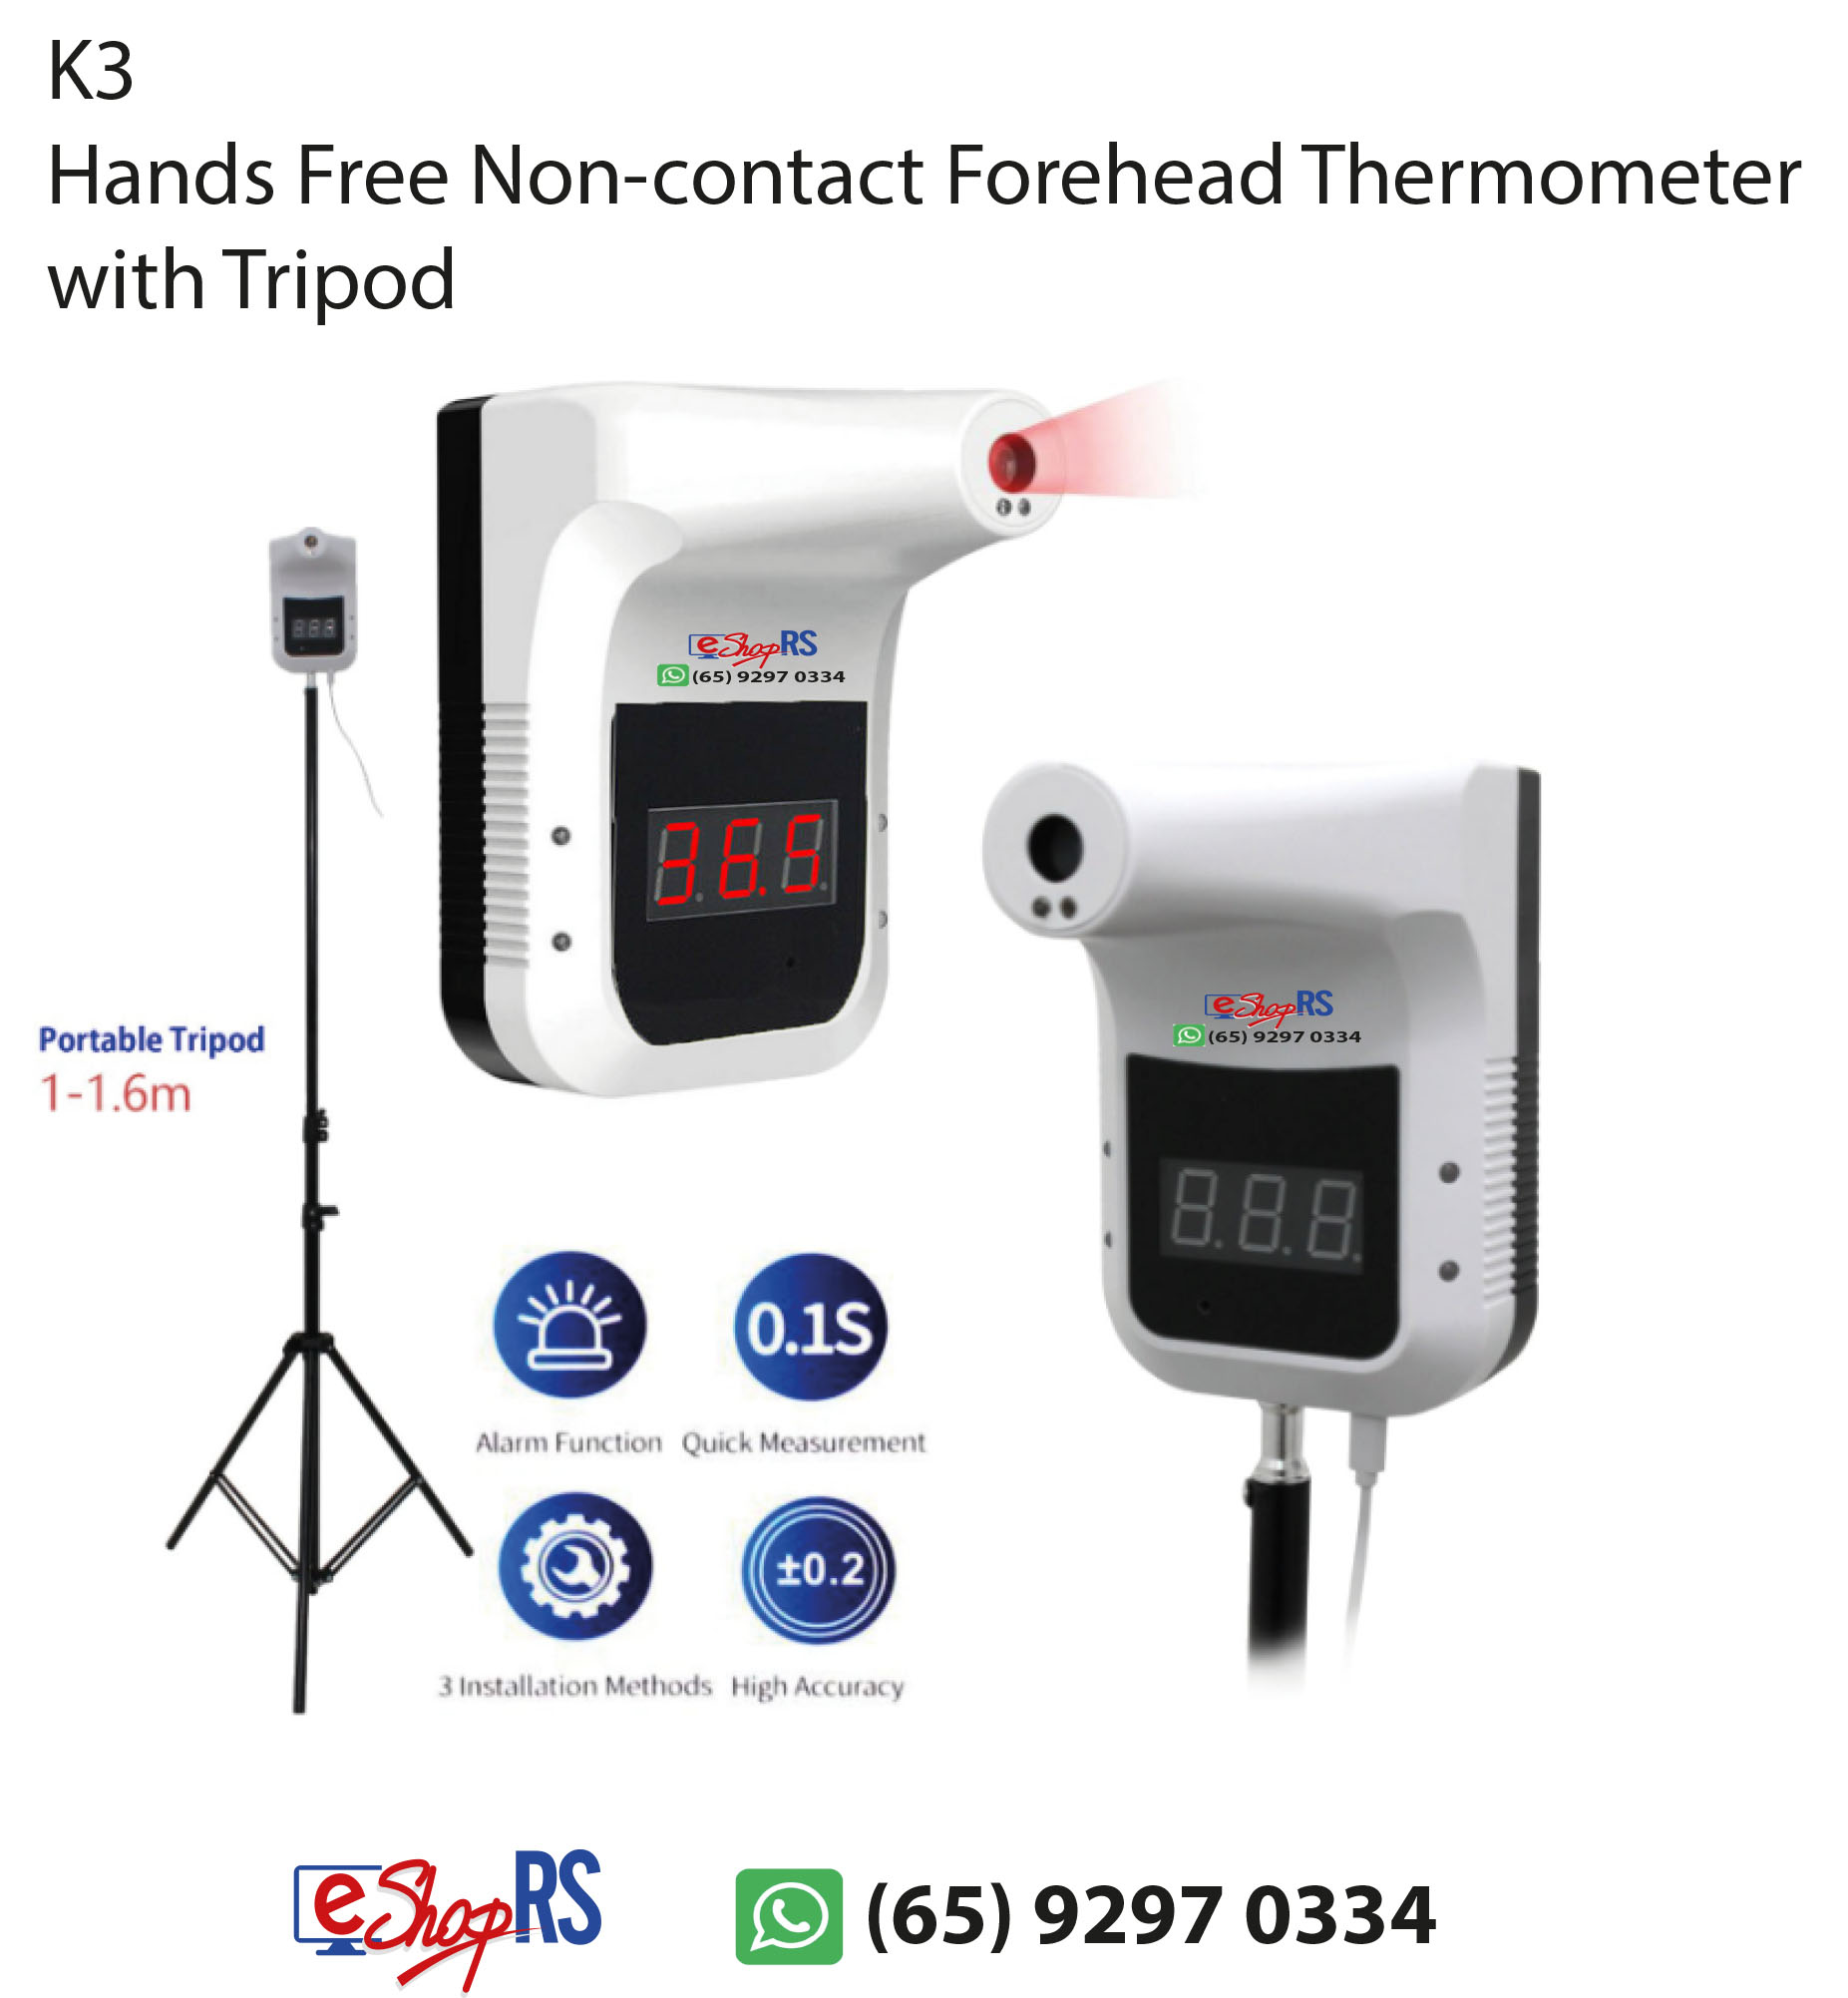 K3 Hands Free Non-contact Forehead Thermometer with Tripod